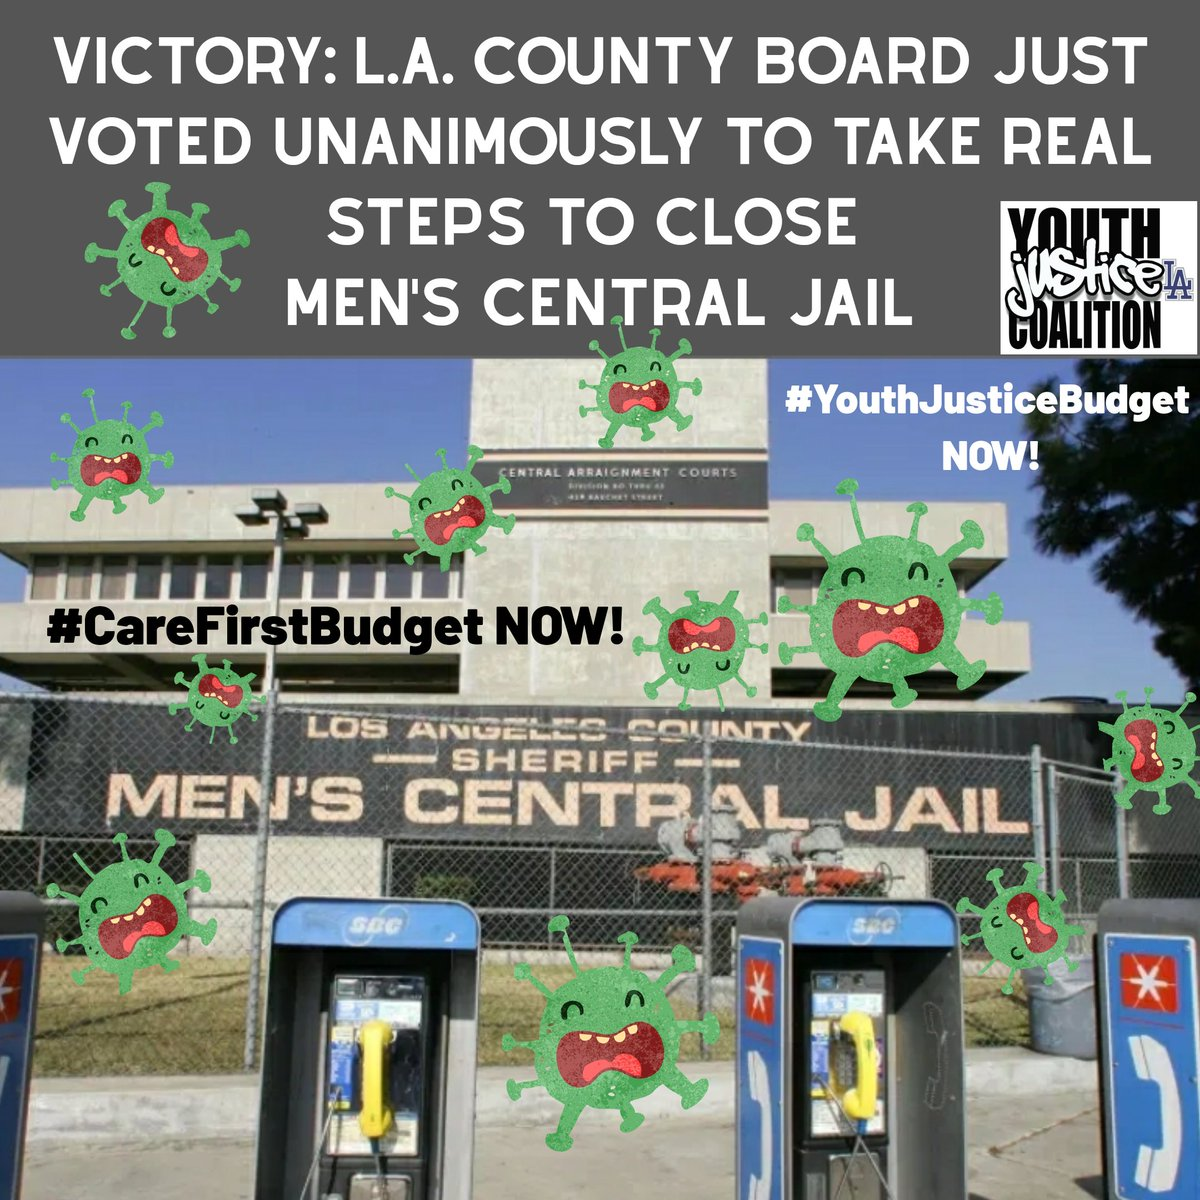 TODAY WE WON-L.A. County Board of Supervisors Voted Unanimously to Take Real Steps to CLOSE MEN'S CENTRAL JAIL!! 📢📢📢✊🏿✊🏾 Honored to work with @JusticeLANow coalition who organized over 17,000 public comments today in support of #CareNotCages!! End the #IncarcerationVirus now!